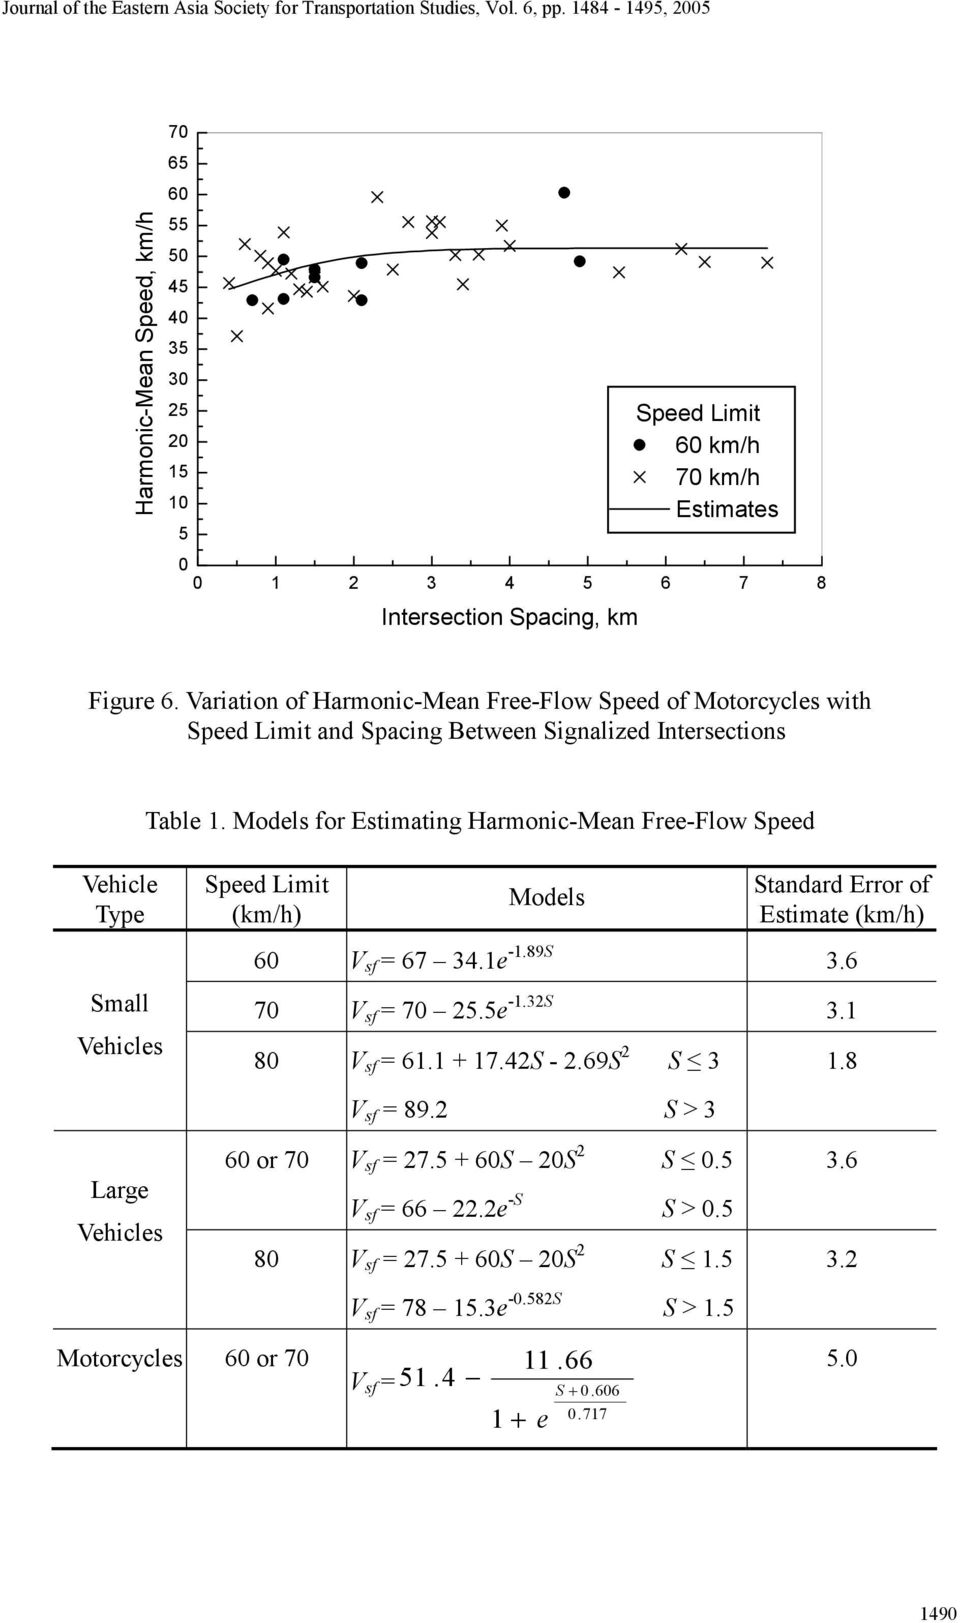 Models for Estimating Harmonic-Mean Free-Flow Speed Vehicle Type Small Vehicles Speed Limit (km/h) Models Standard Error of Estimate (km/h) V sf = 67 34.1e -1.89S 3.6 V sf = 25.